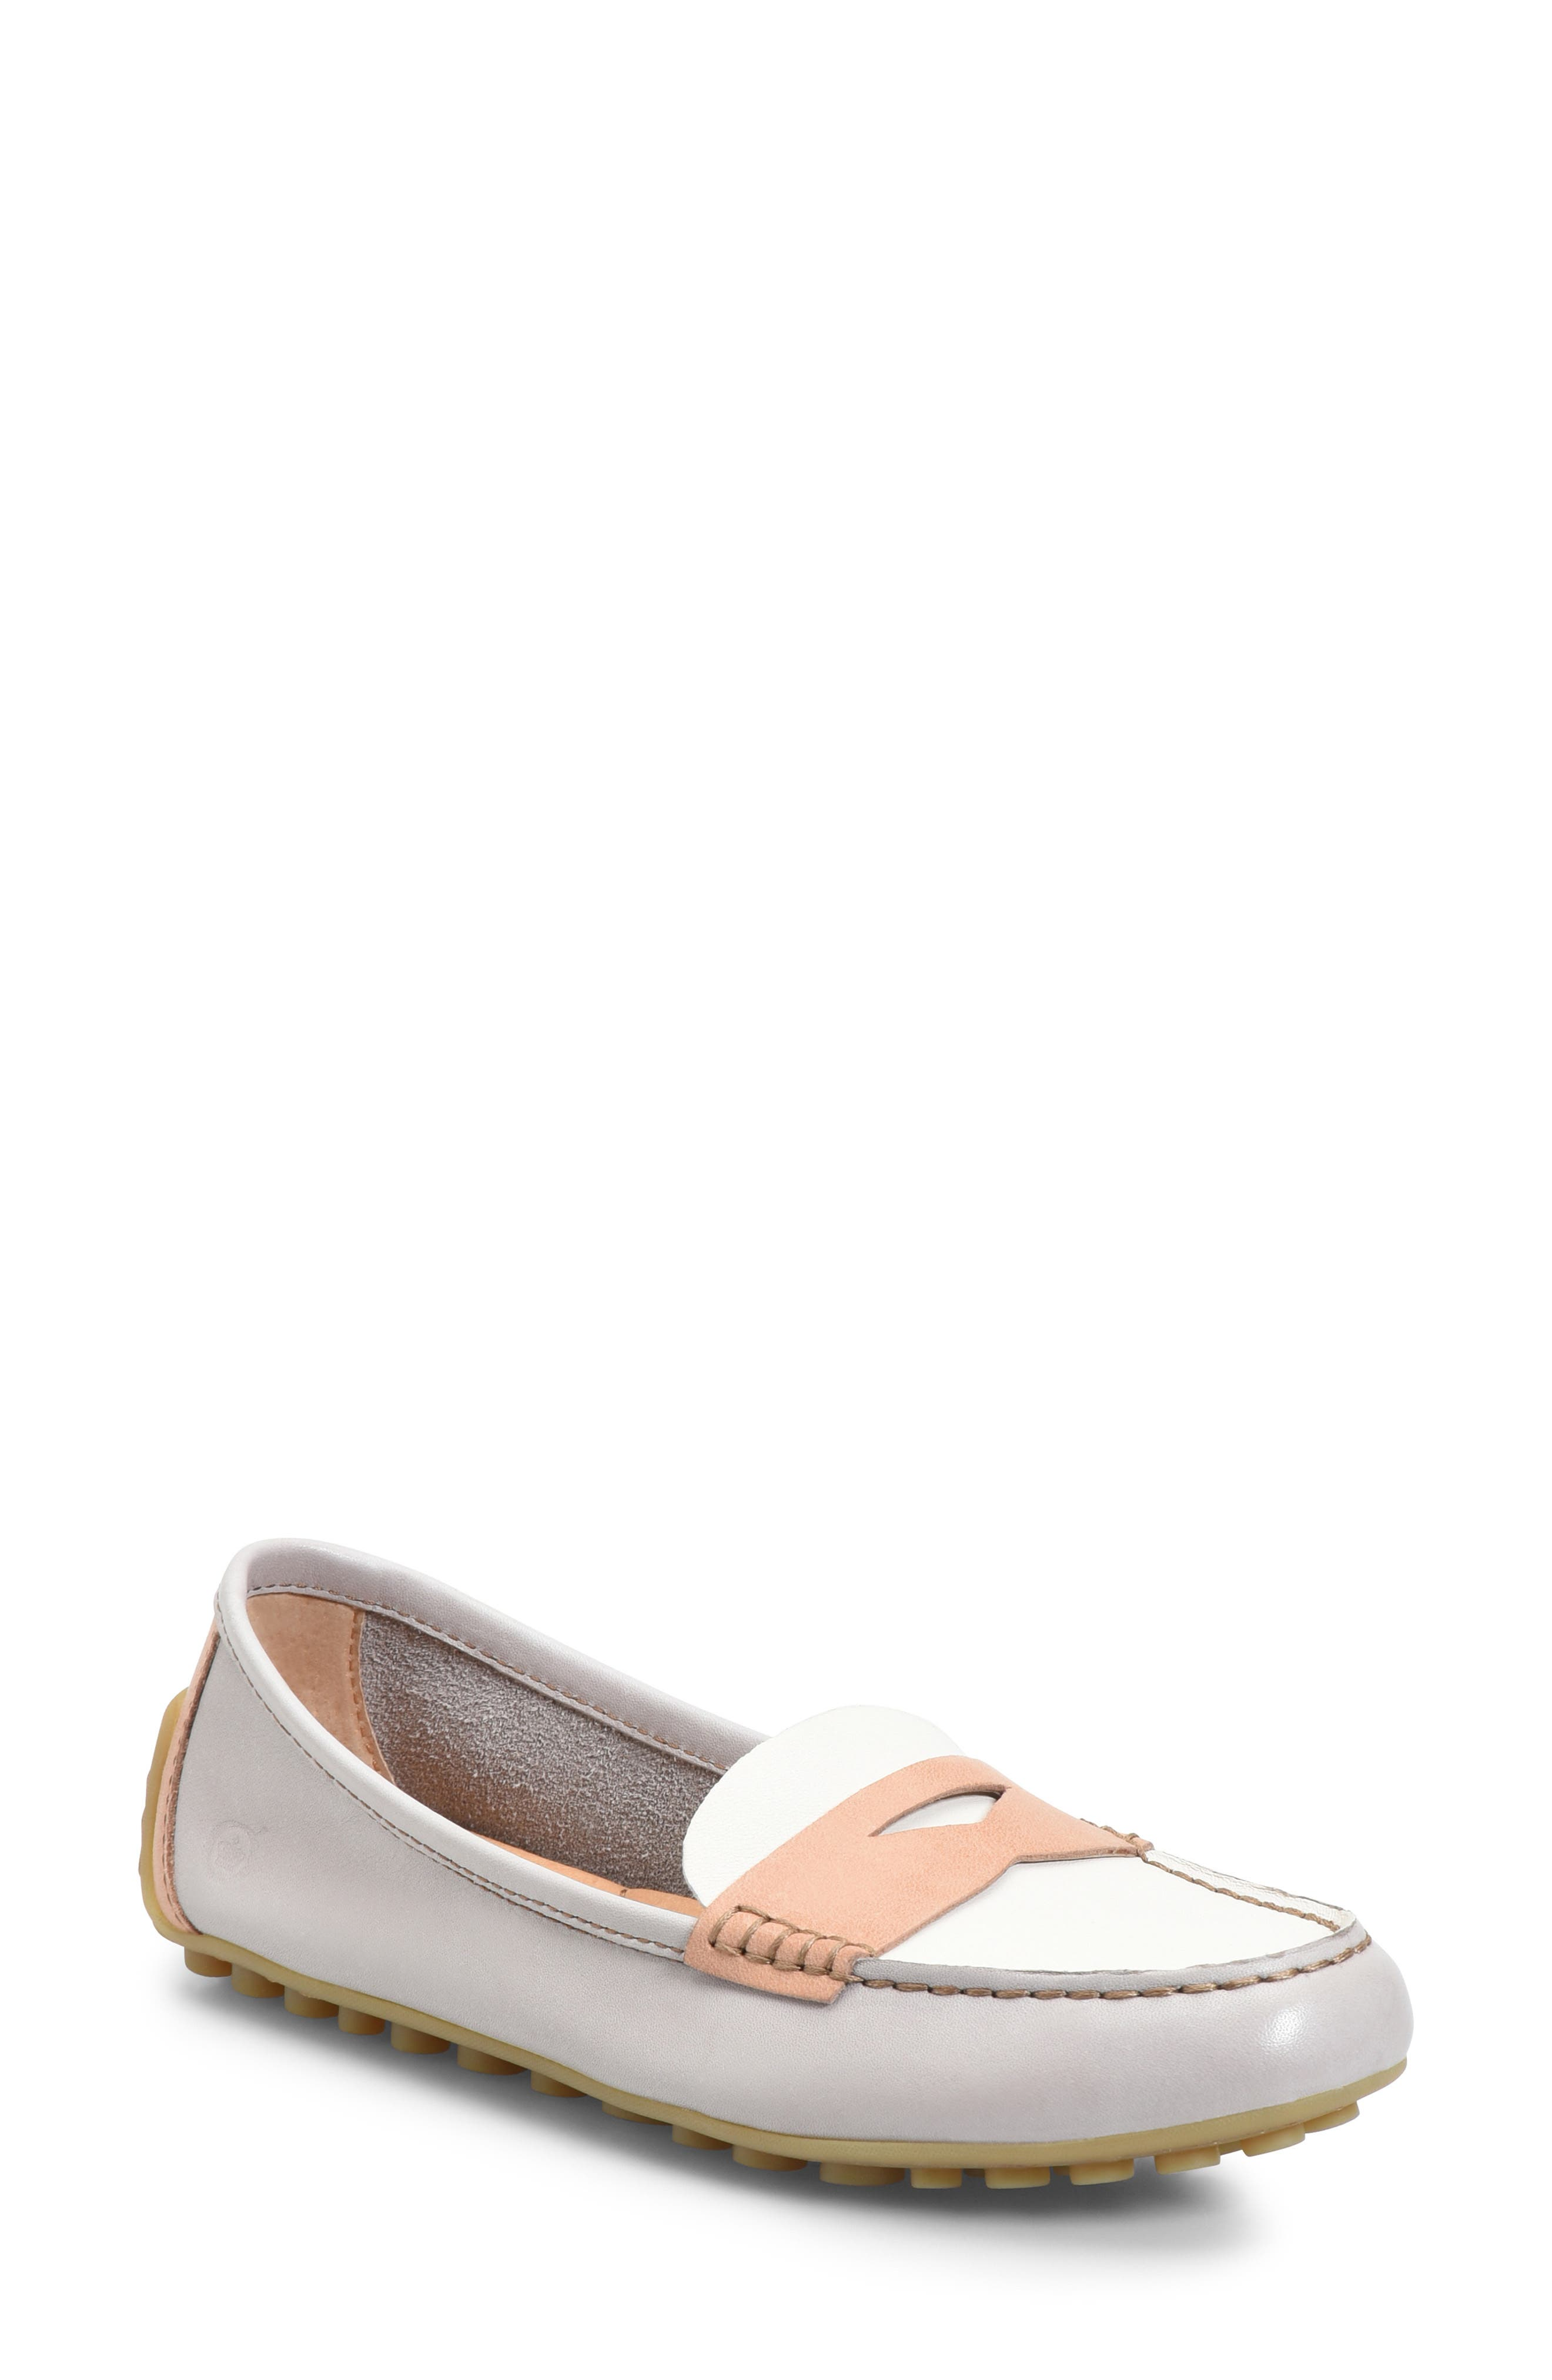 Malena Penny Loafer, Main, color, LIT GREY/ WHITE/ BLUSH LEATHER